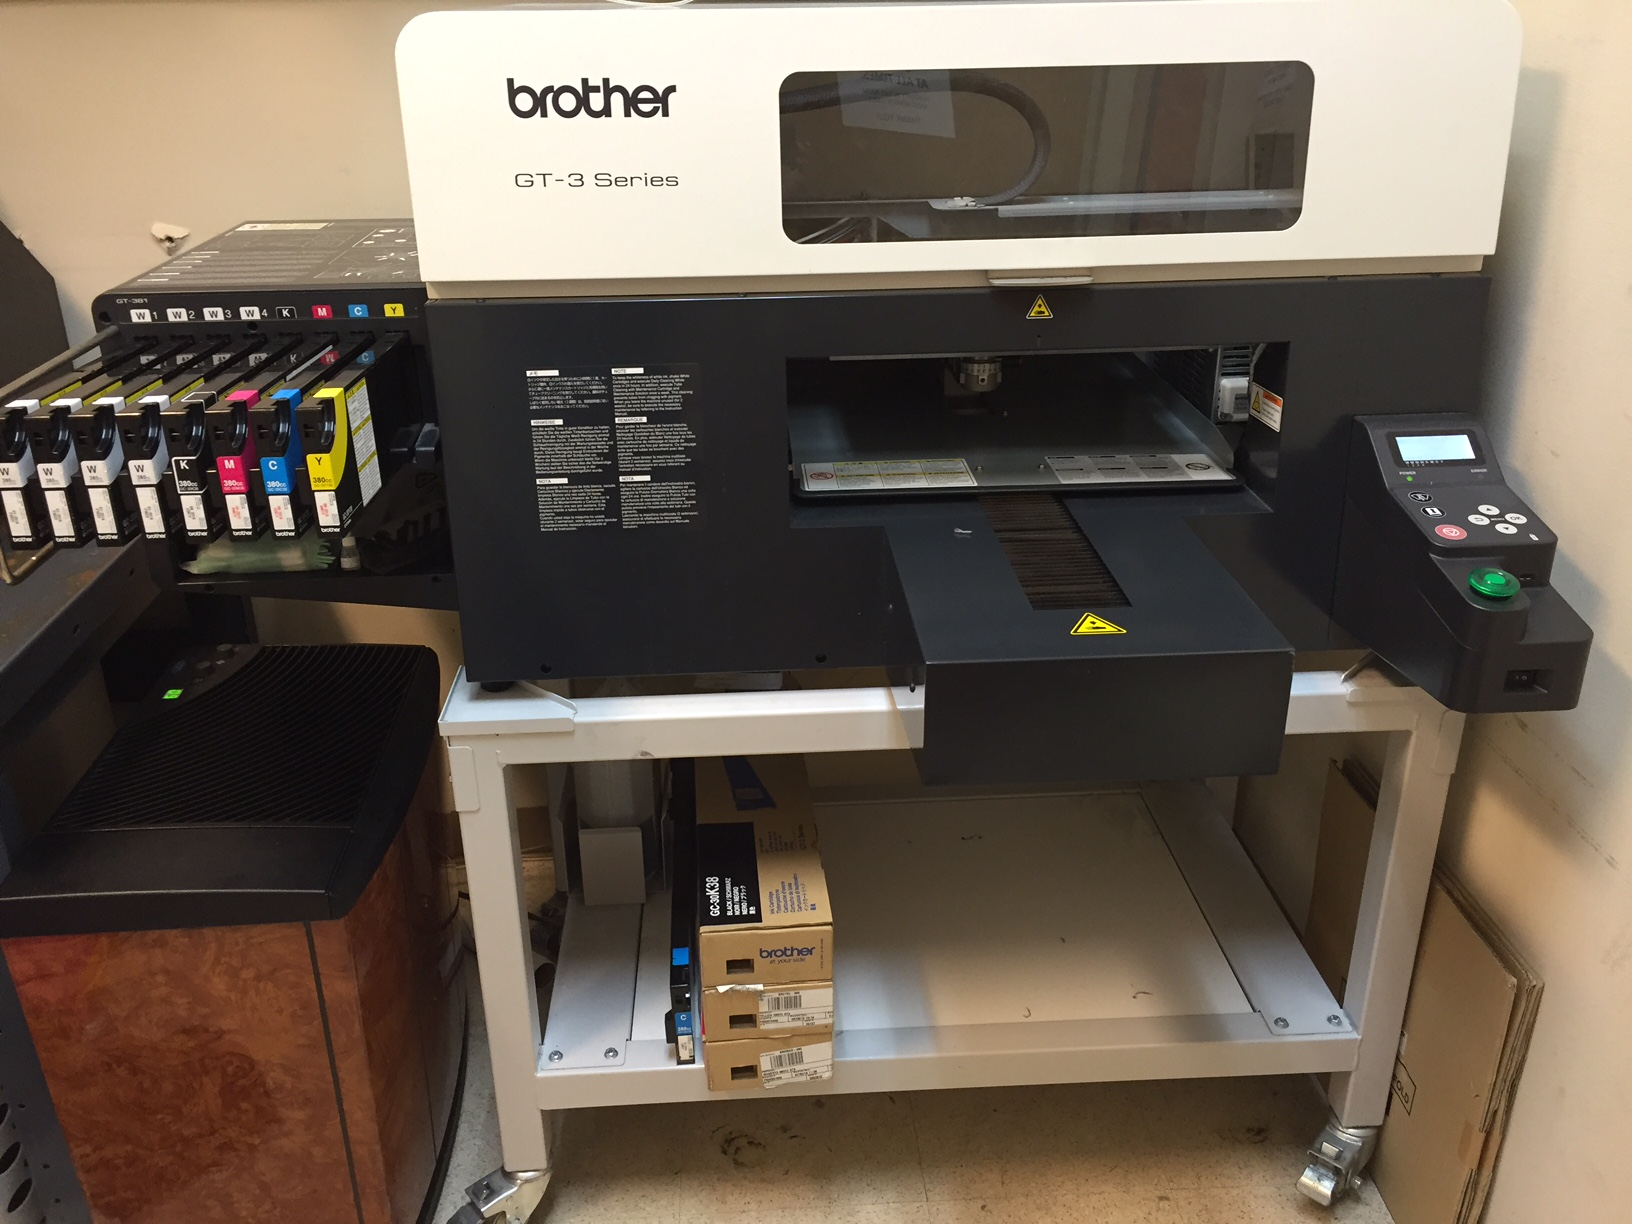 Brother Series GT-3 Series DTG Printer and extras